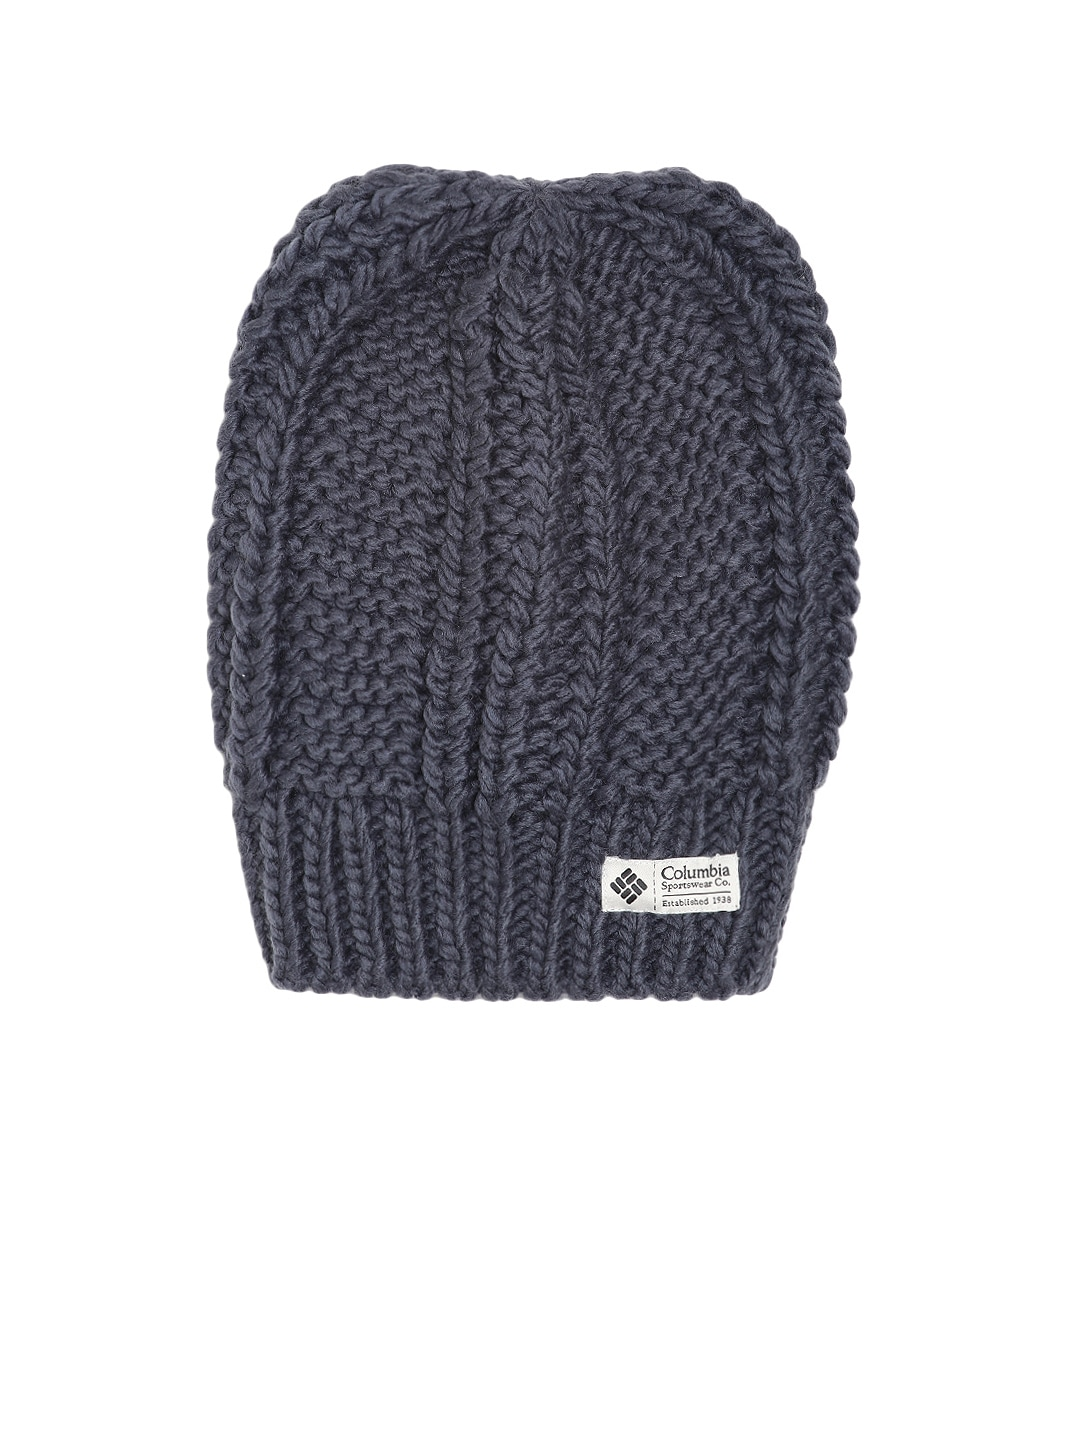 8c122563c3 Winter Store Beanies - Buy Winter Store Beanies online in India